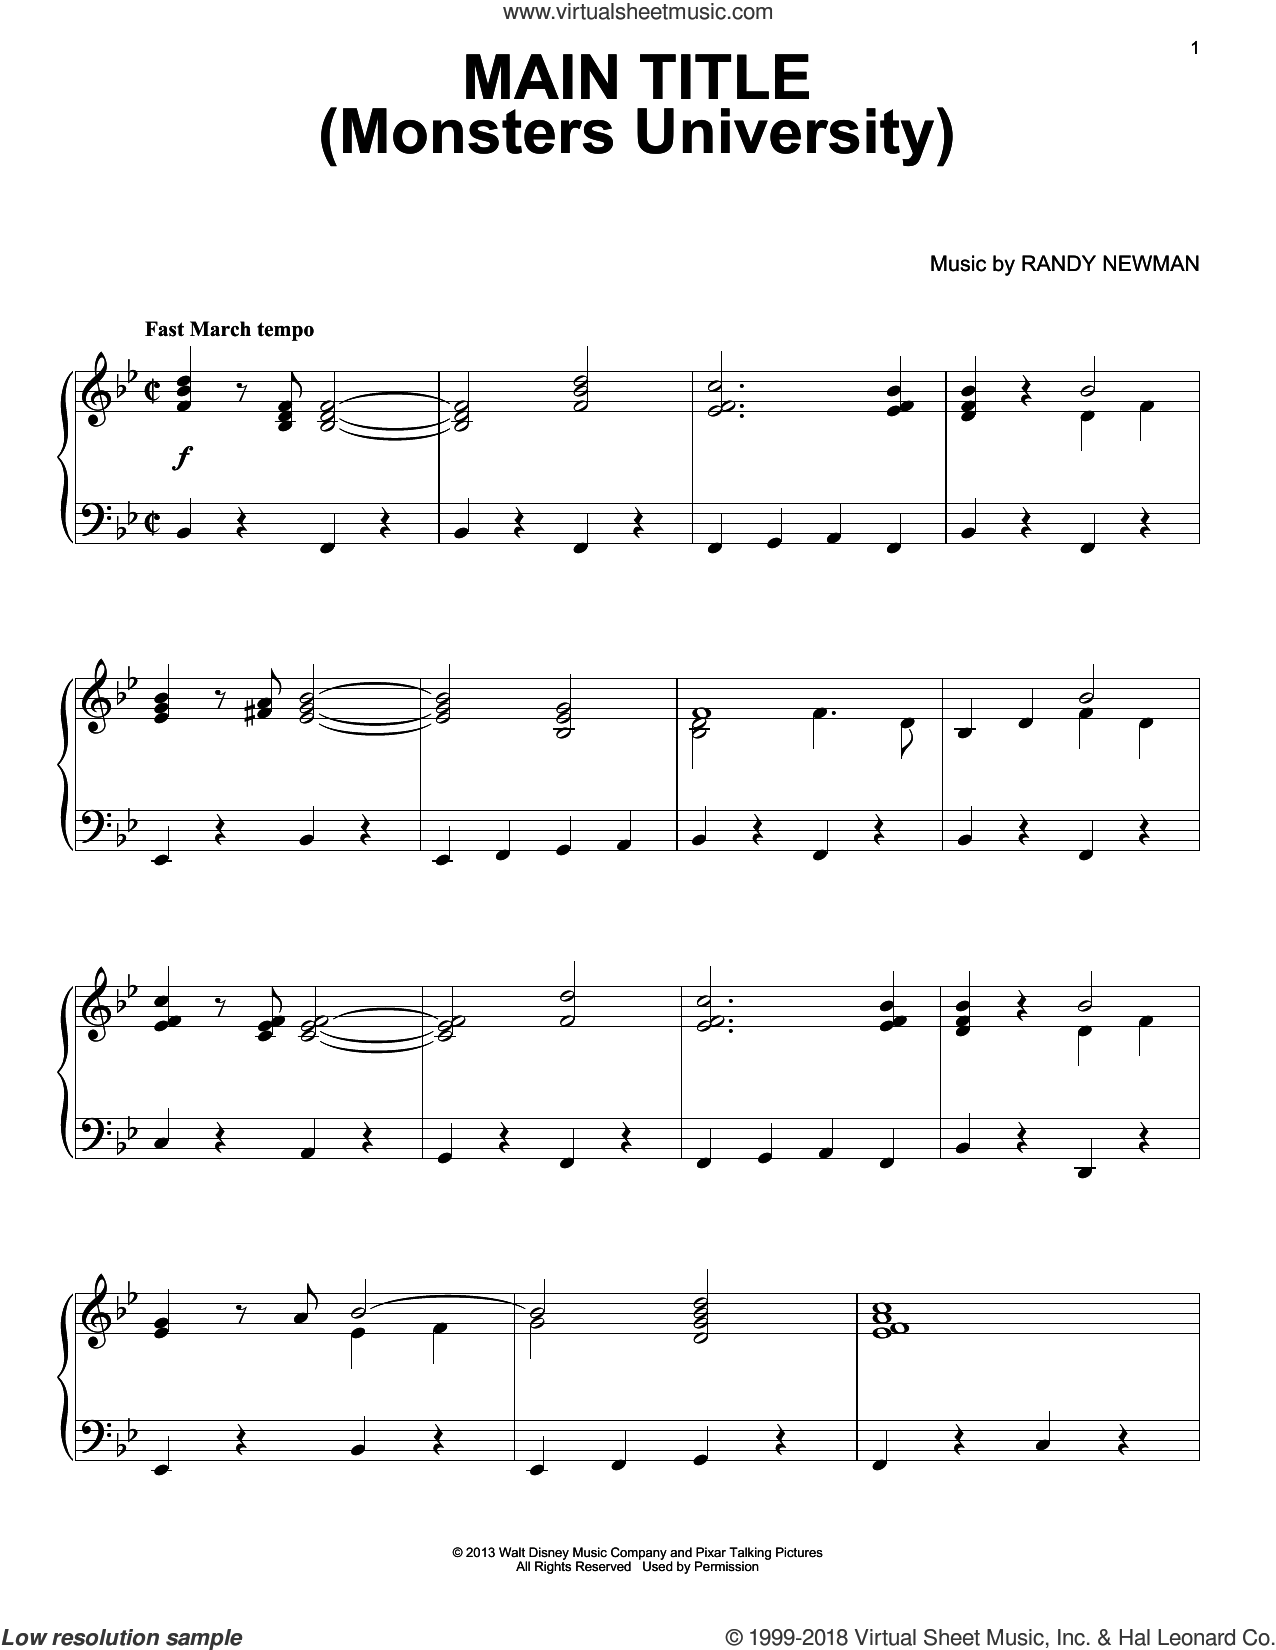 Main Title (Monsters University) sheet music for piano solo by Randy Newman, Monsters University (Movie) and Monsters, Inc. (Movie), intermediate skill level